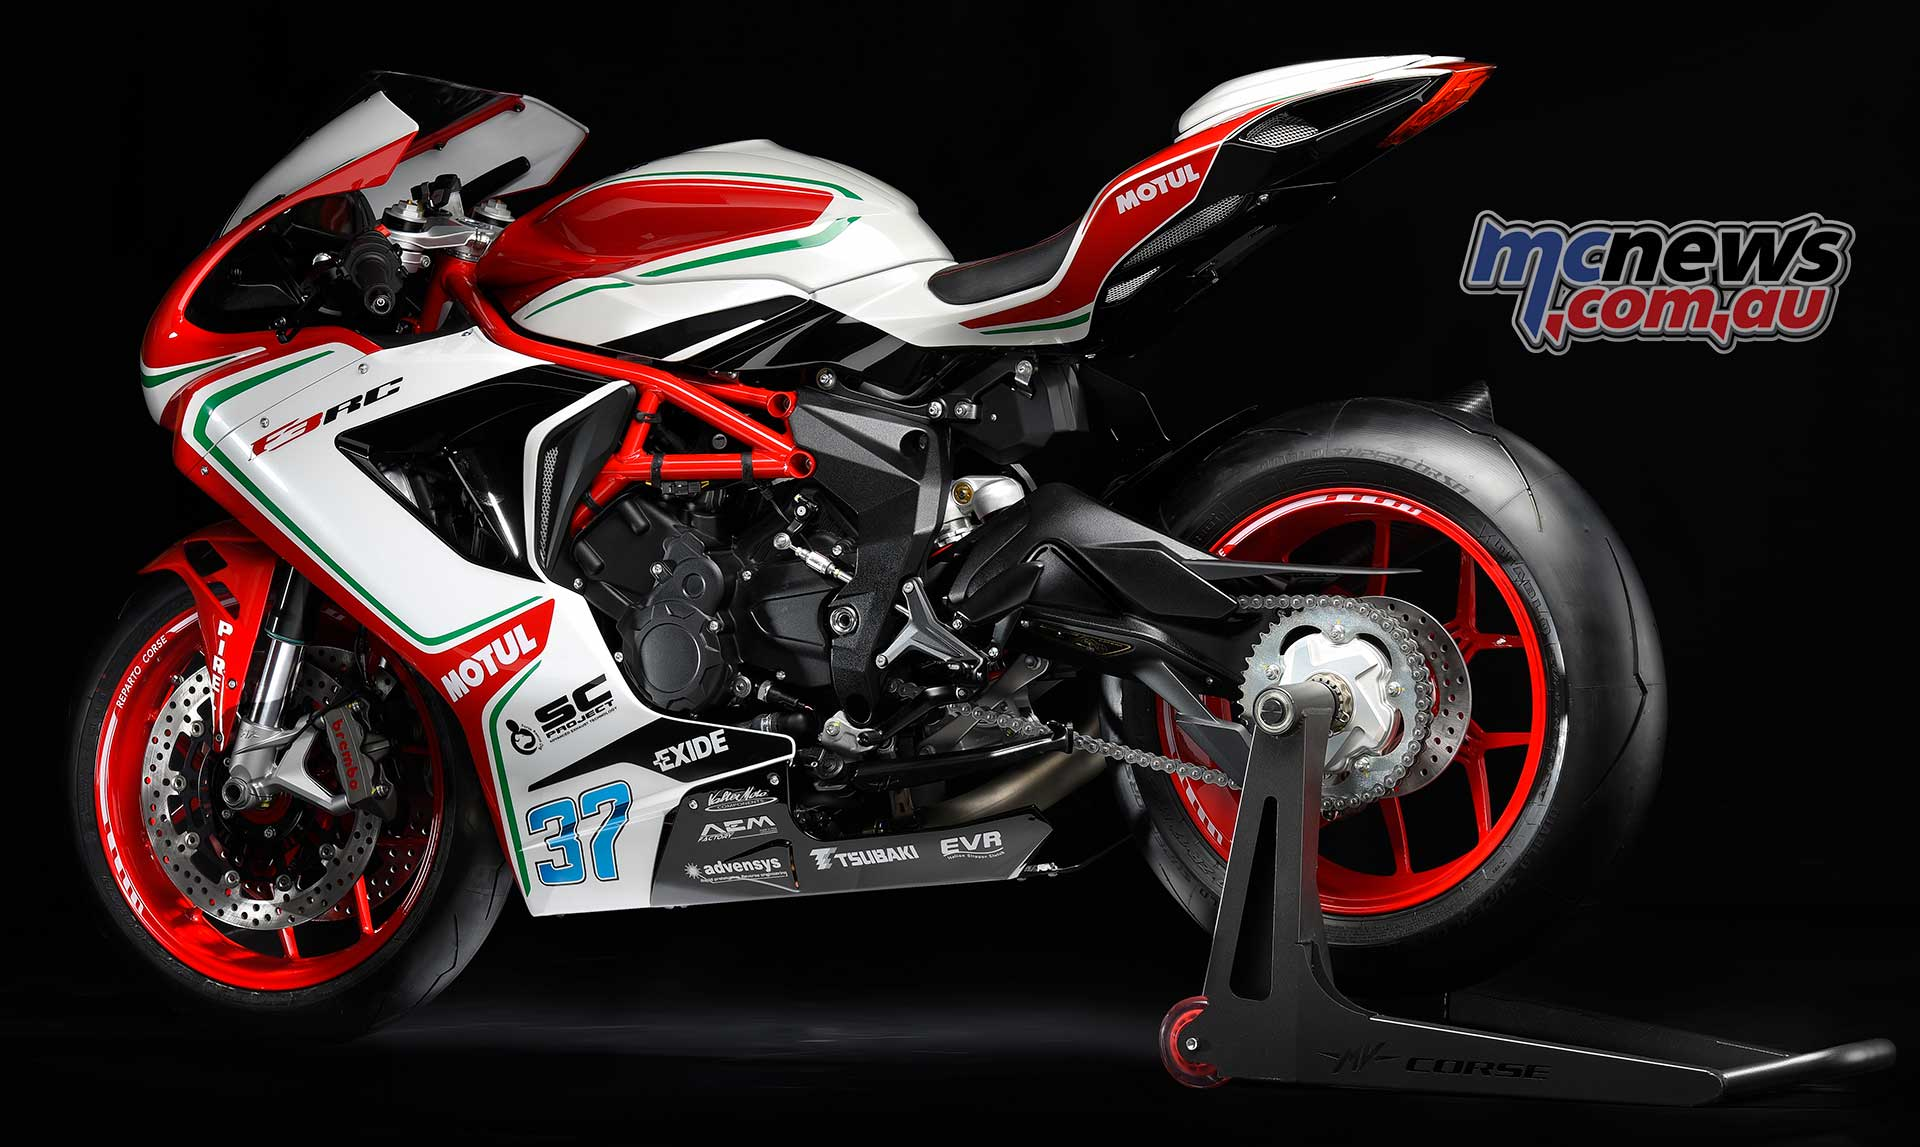 2018 mv agusta f3 675 rc and 2018 mv f3 800 rc. Black Bedroom Furniture Sets. Home Design Ideas